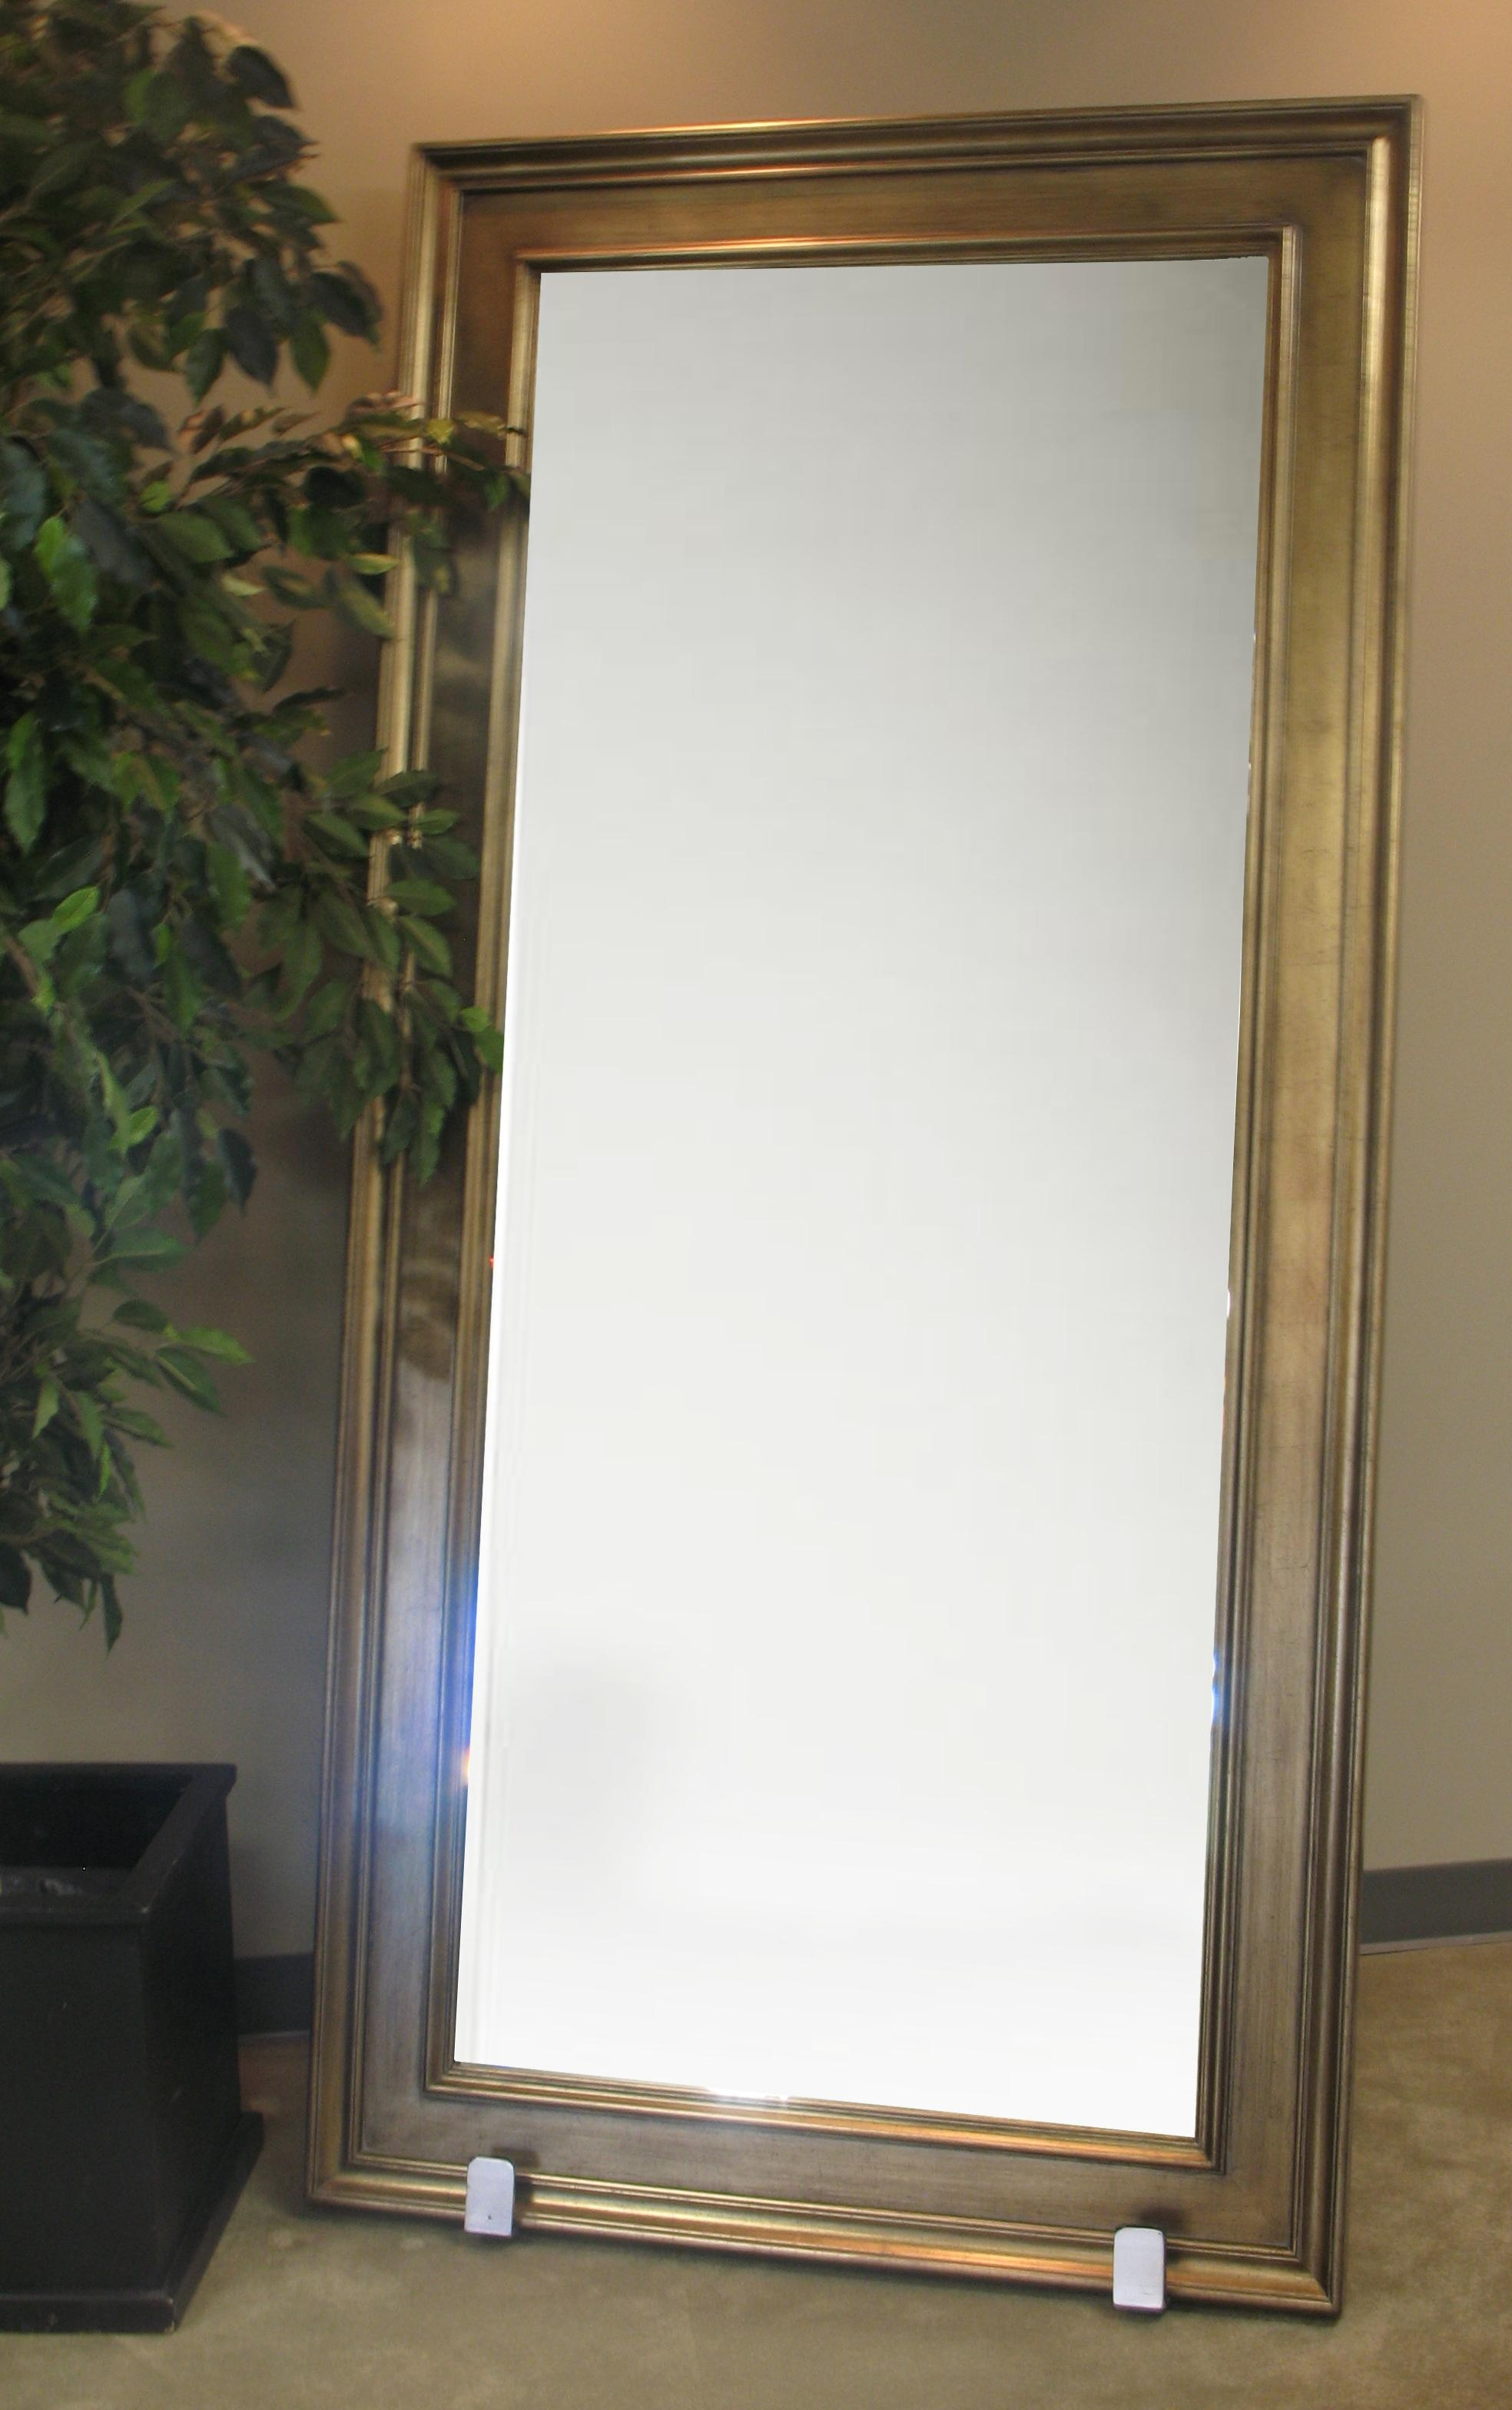 Gold Frame Floor Mirror | Town & Country Event Rentals Throughout Framed Floor Mirrors (View 3 of 20)